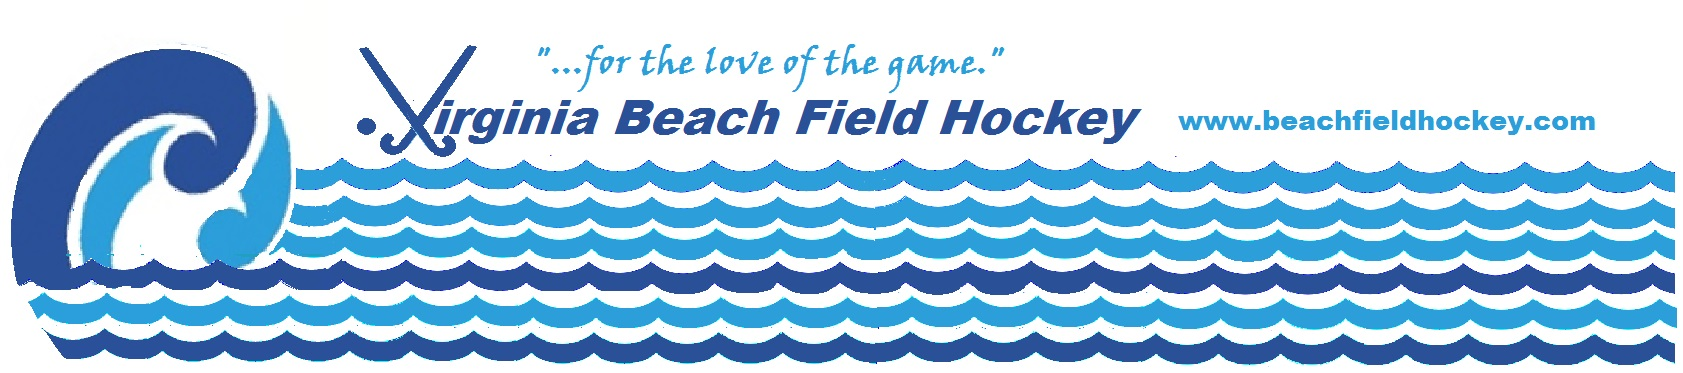 Virginia Beach Field Hockey, Field Hockey, ,